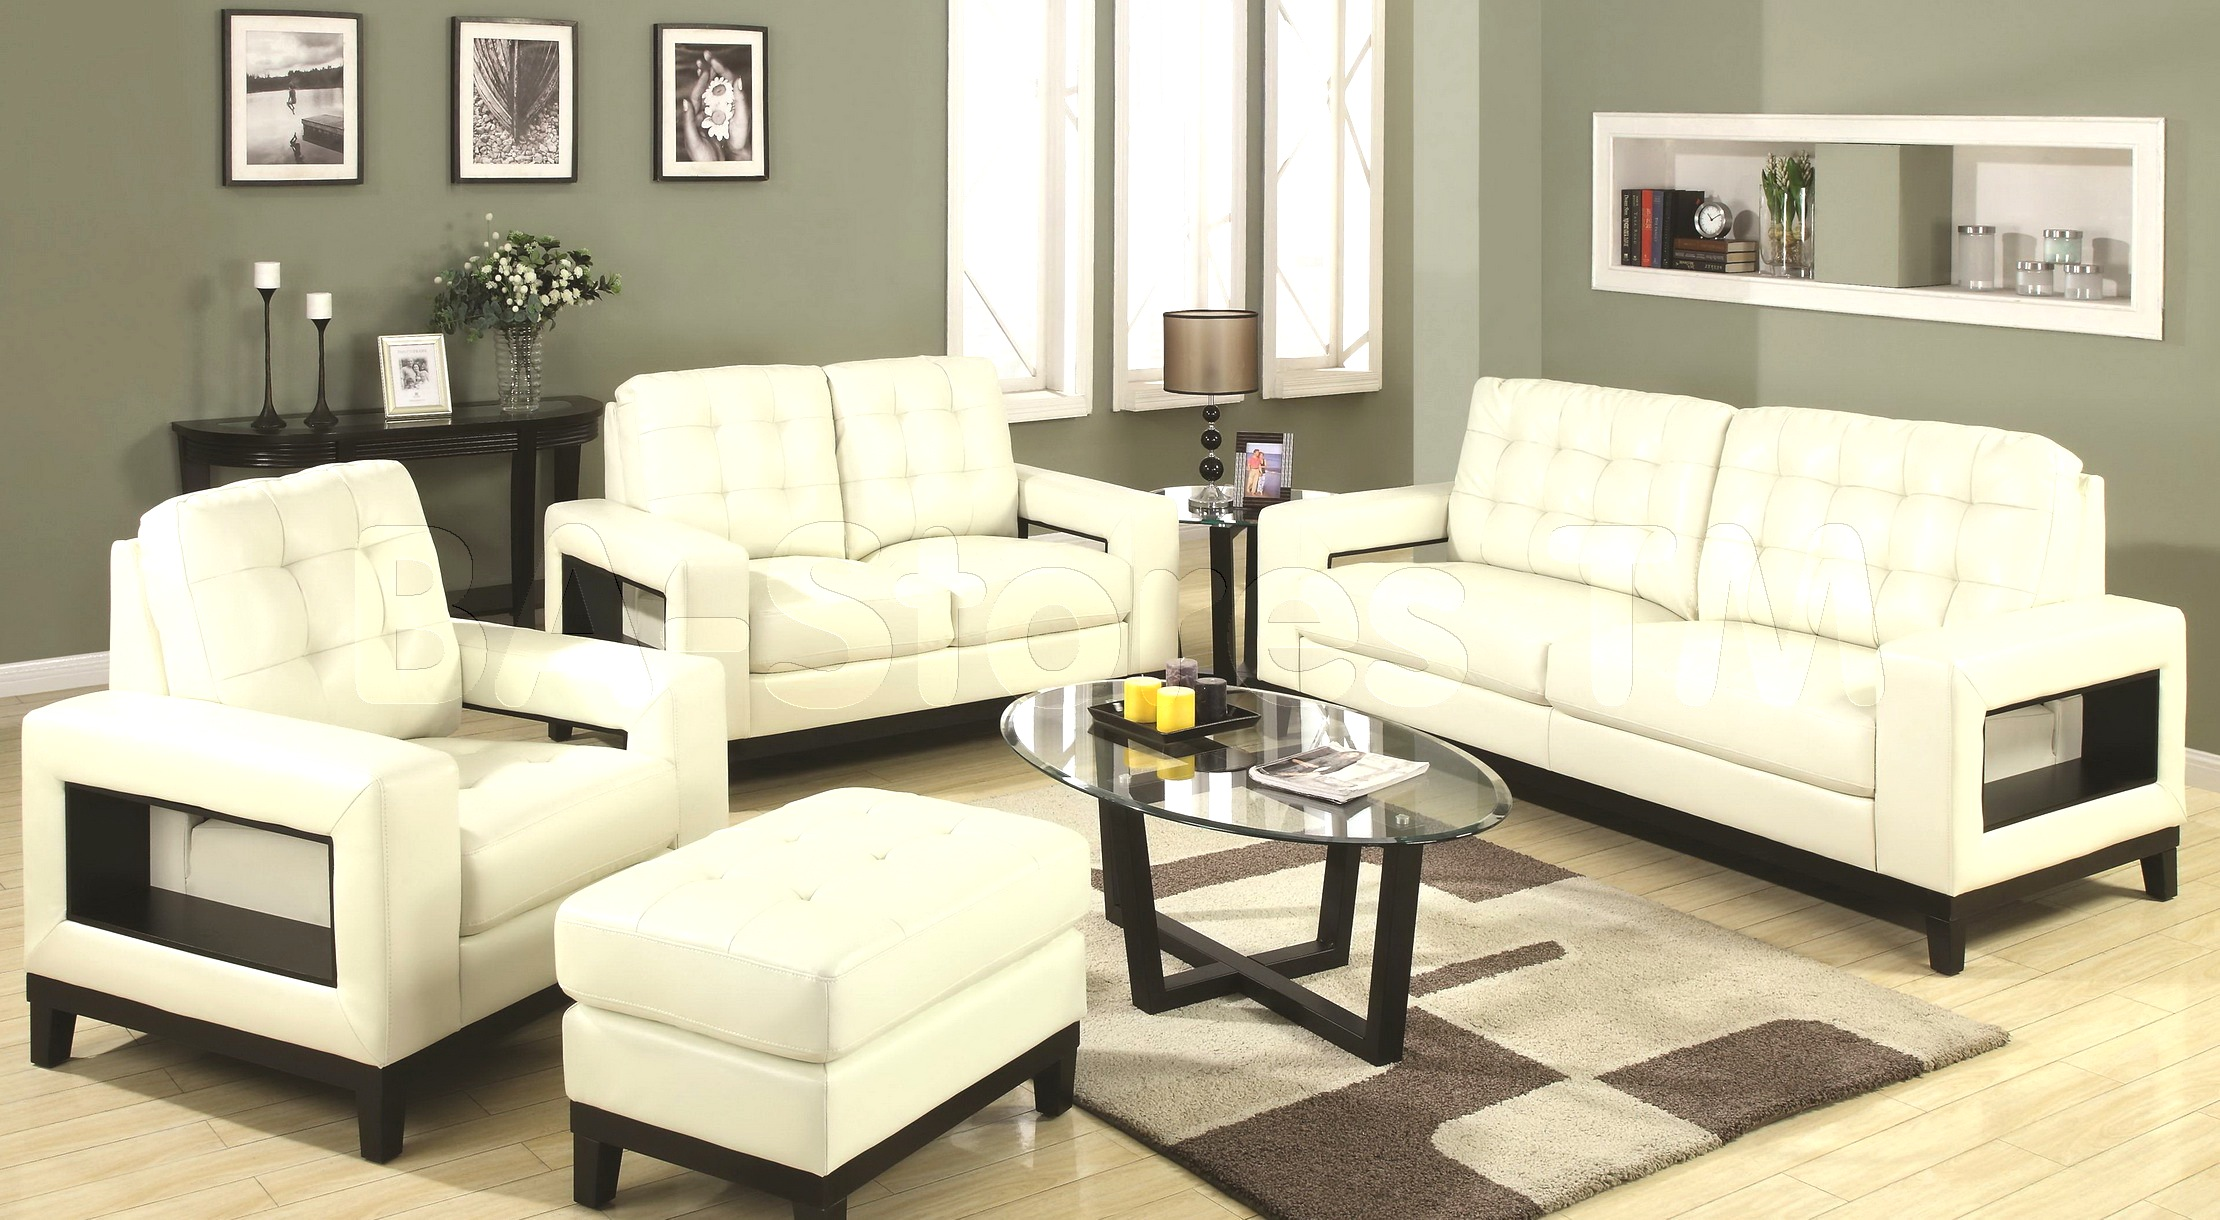 White living room furniture sets roselawnlutheran for Modern living room furniture sets